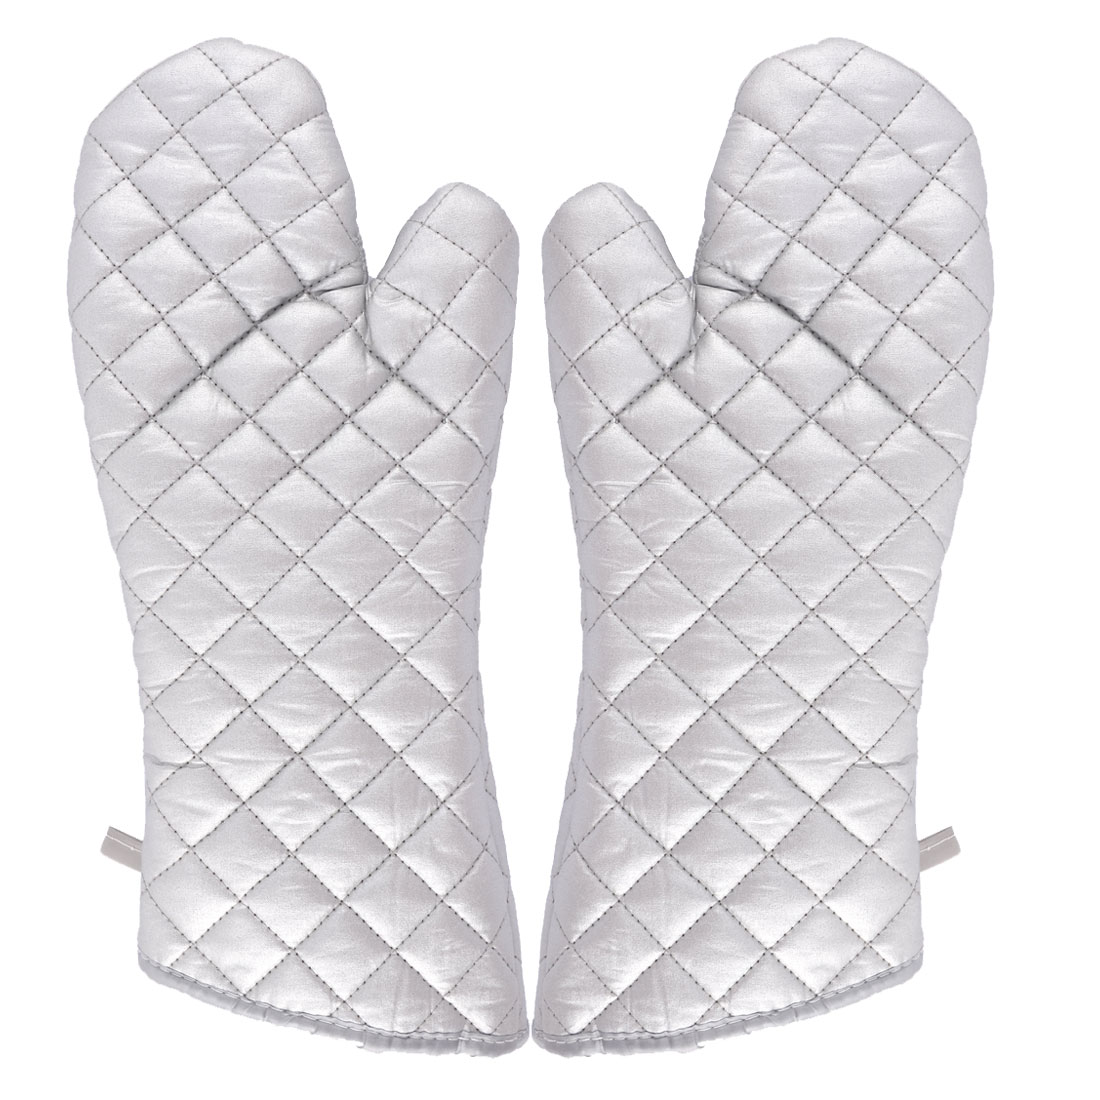 Household Kitchen Bakery Heat Resistance Microwave Baking Oven Gloves Silver Tone Pair